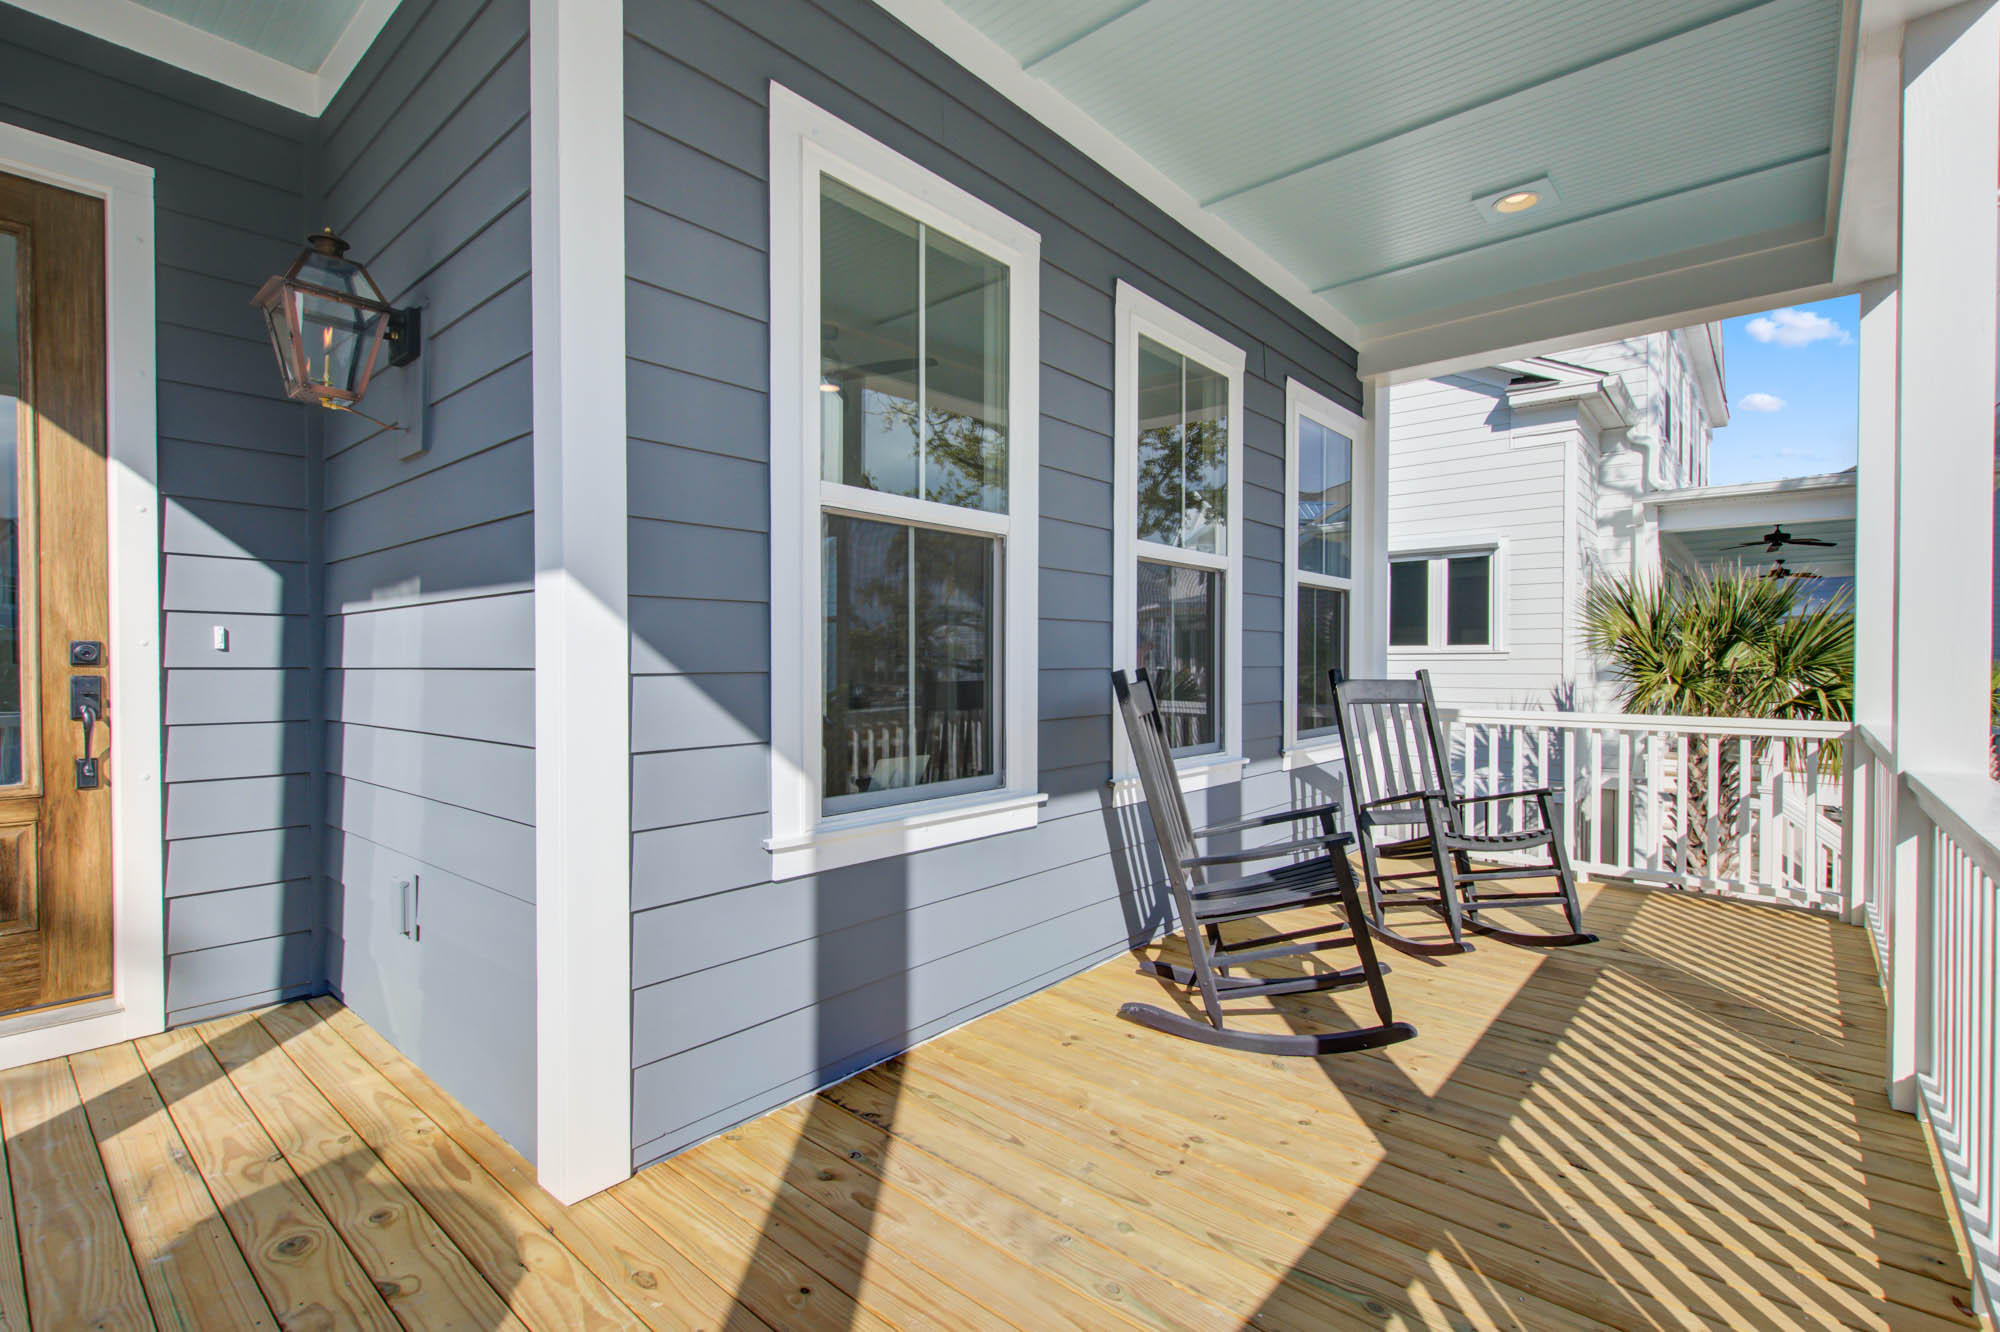 Stratton by the Sound Homes For Sale - 1541 Menhaden, Mount Pleasant, SC - 4